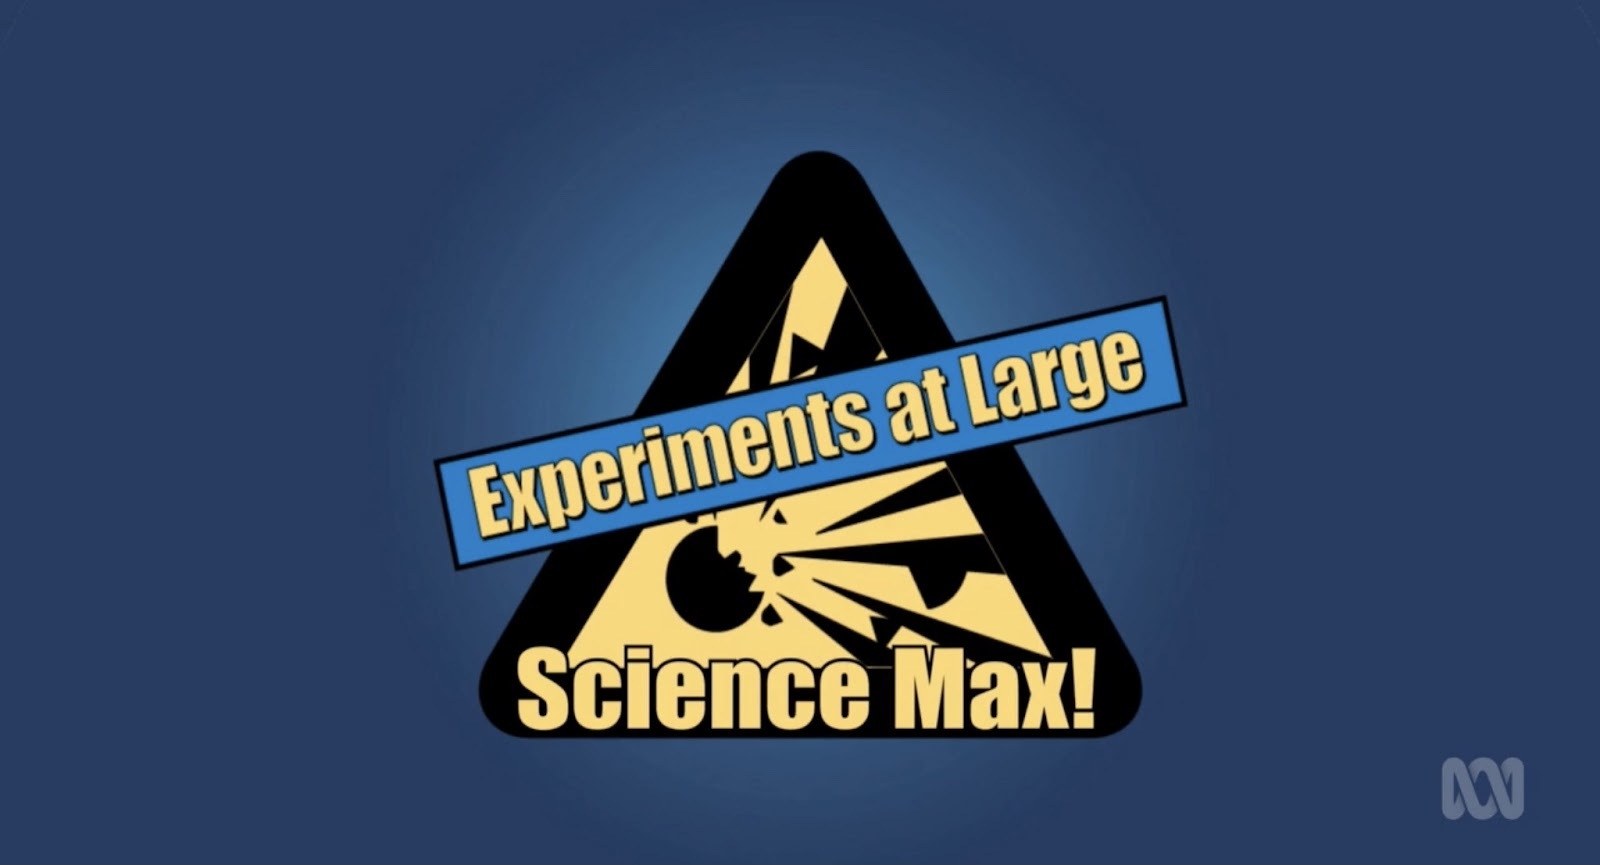 science max experiments at large